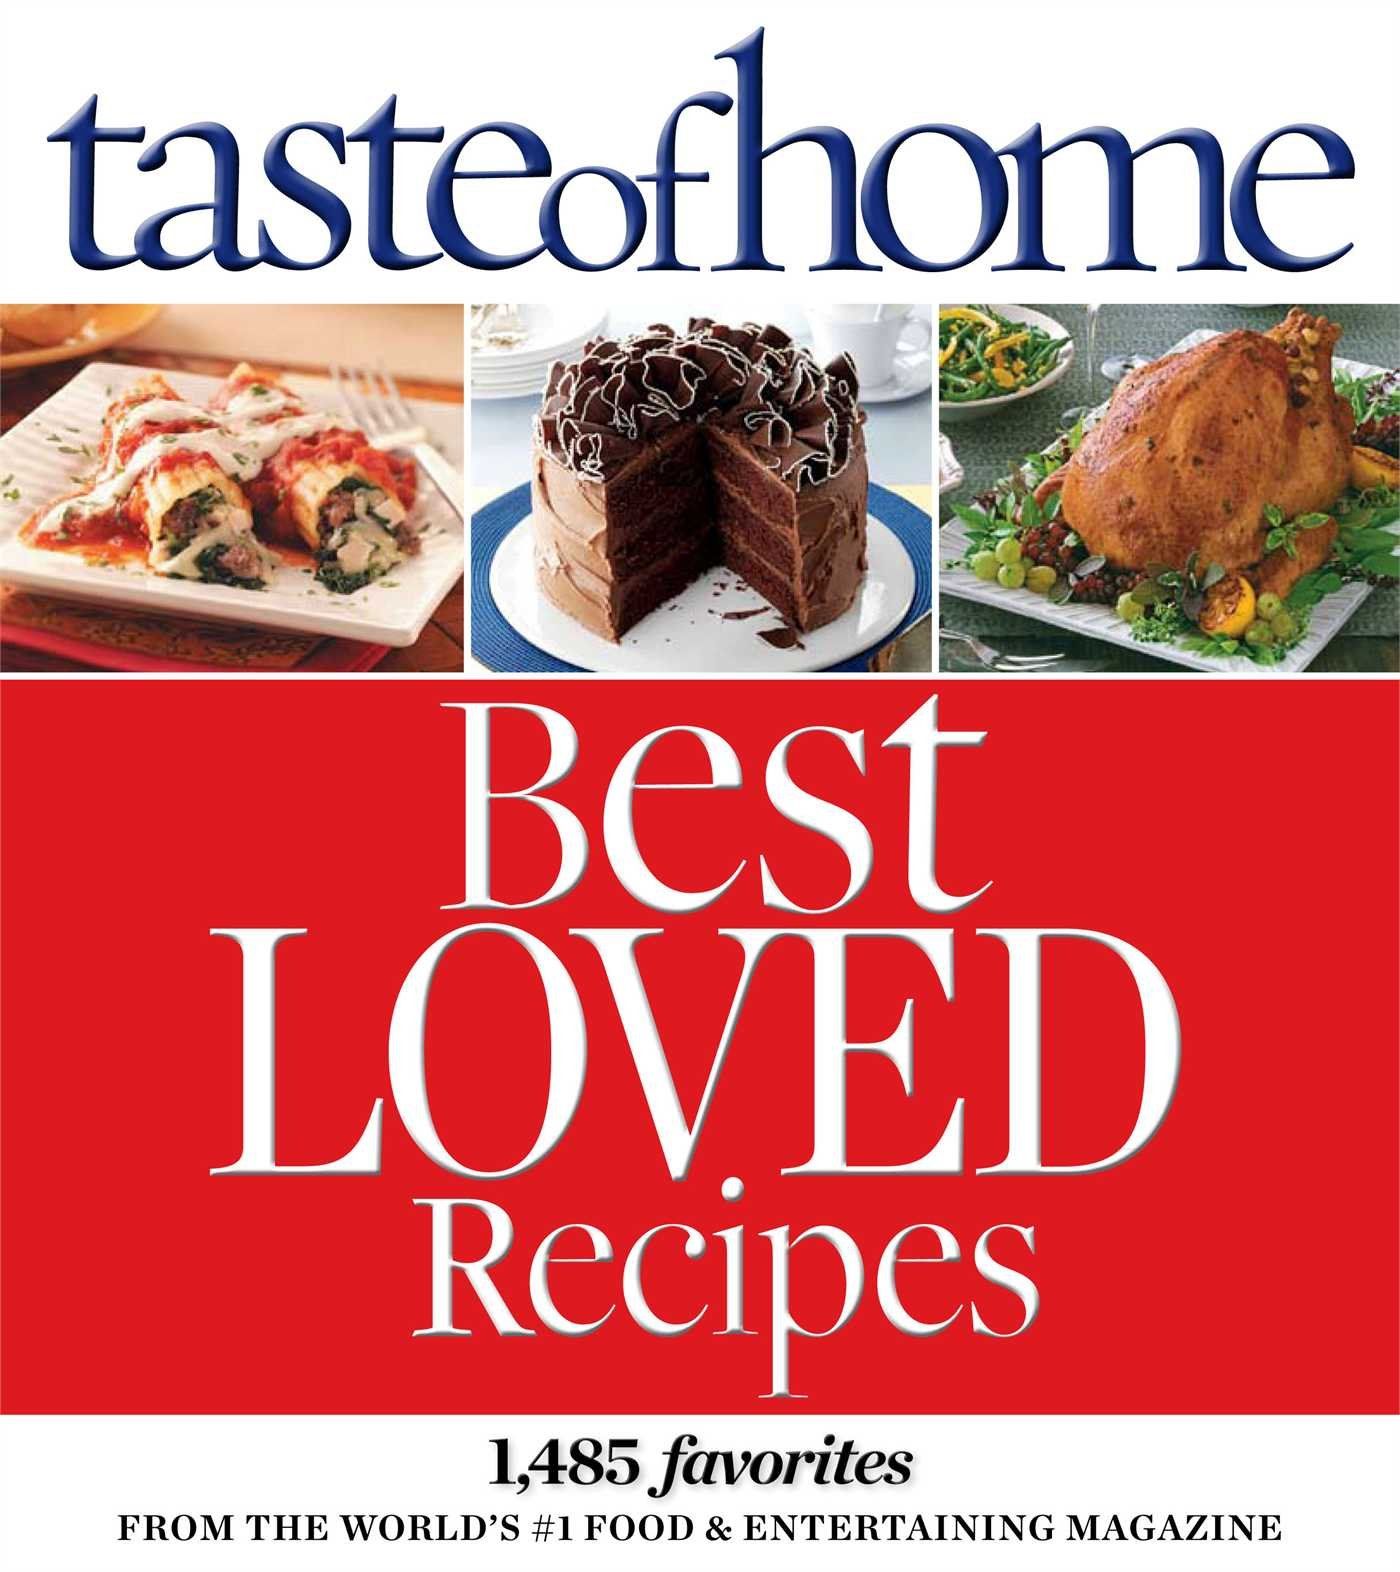 Taste of home best loved recipes 1485 favorites from the worlds 1 taste of home best loved recipes 1485 favorites from the worlds 1 food entertaining magazine taste of home 9780898219913 amazon books forumfinder Image collections